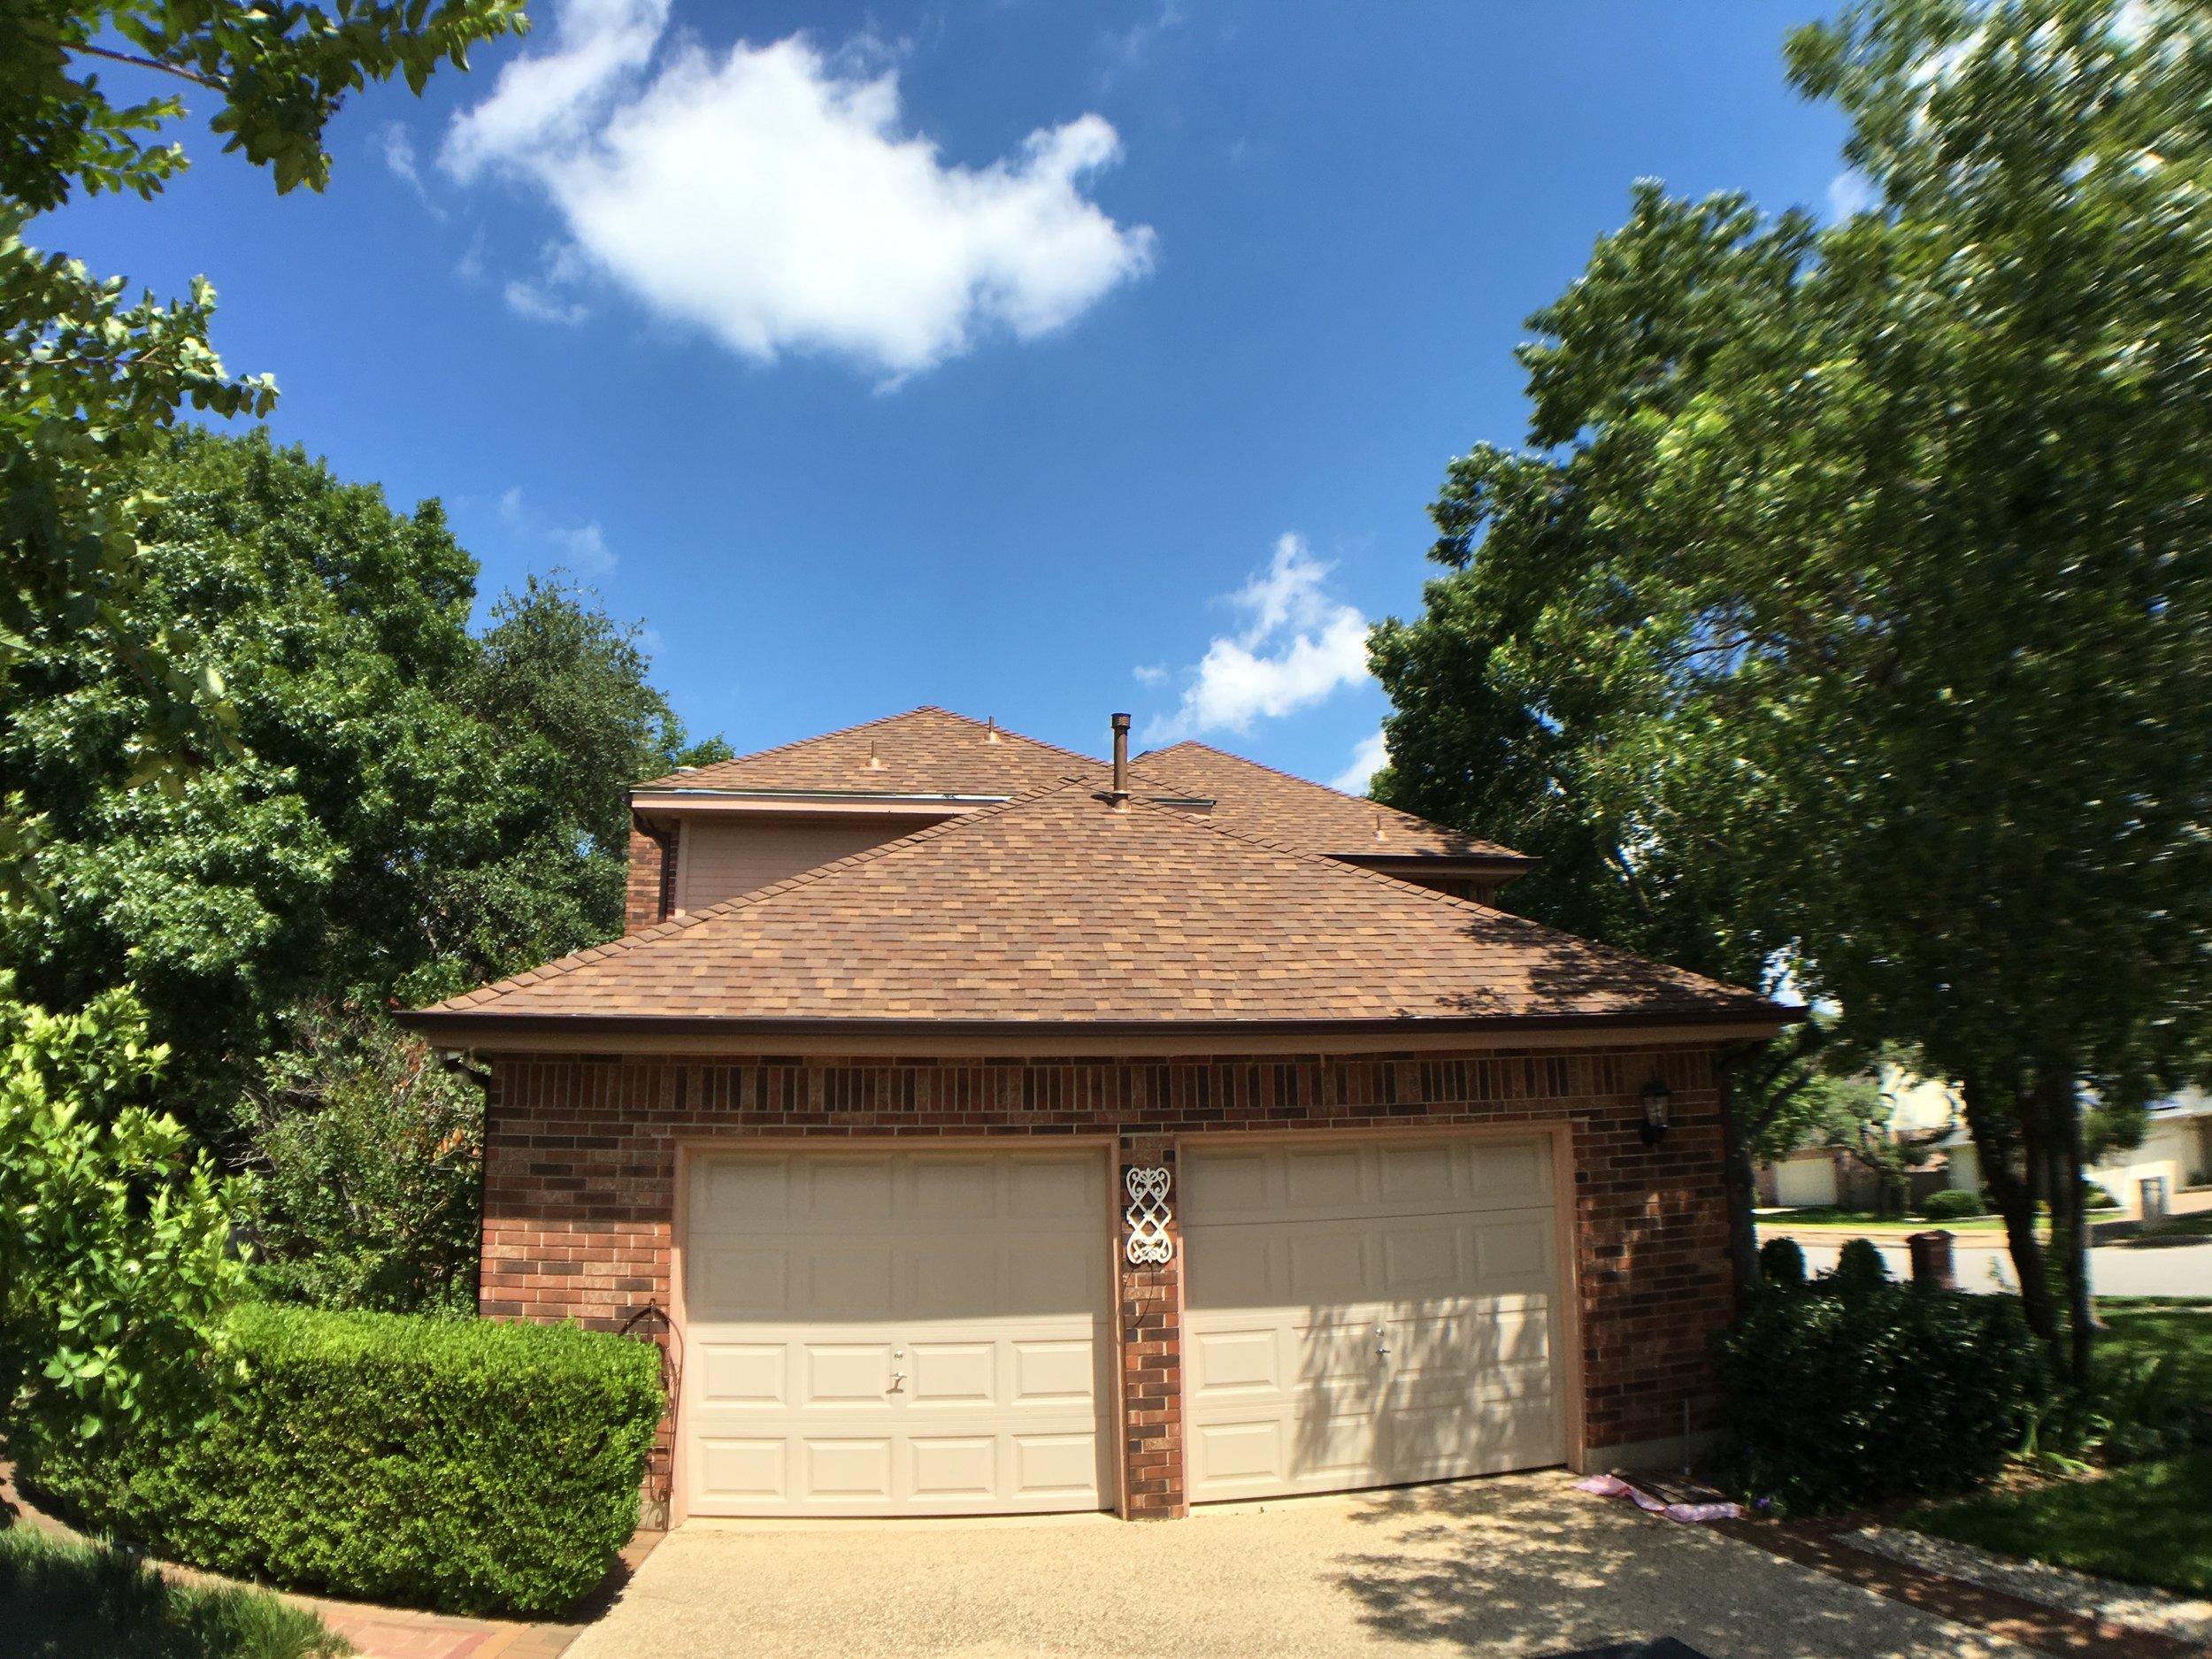 Replaced Roof & Gutters. Roofing Material: Owens Corning, Aged Cedar